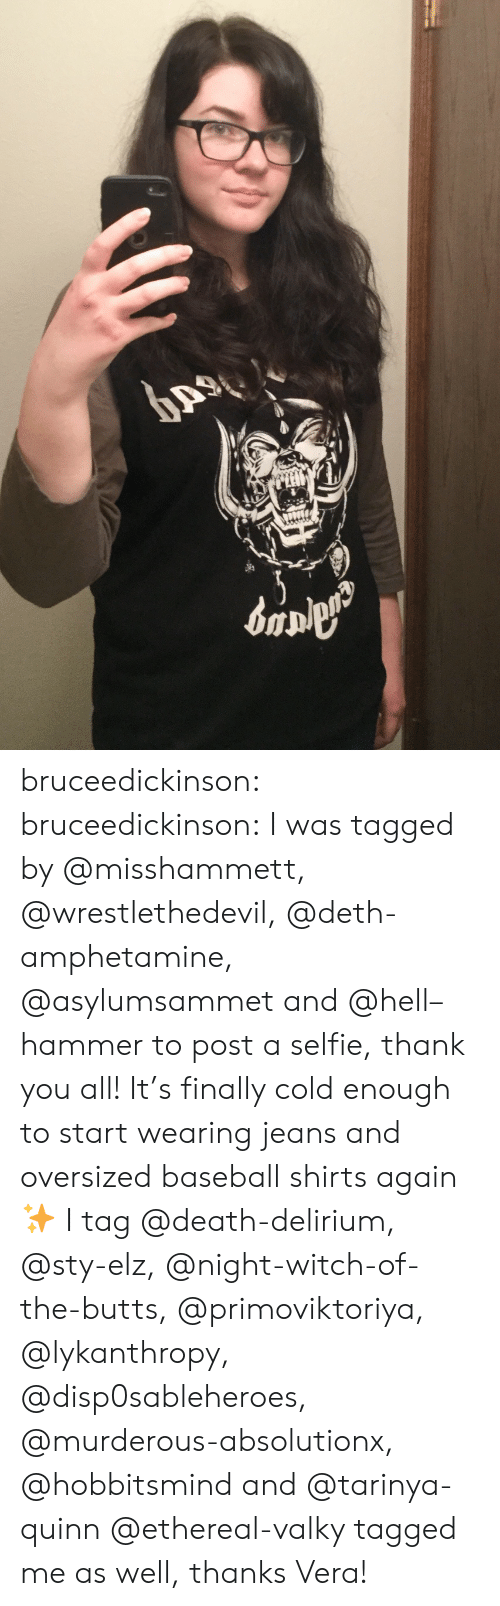 Baseball, Selfie, and Tumblr: bruceedickinson:  bruceedickinson:  I was tagged by @misshammett, @wrestlethedevil, @deth-amphetamine, @asylumsammet and @hell–hammer to post a selfie, thank you all! It's finally cold enough to start wearing jeans and oversized baseball shirts again ✨  I tag @death-delirium, @sty-elz, @night-witch-of-the-butts, @primoviktoriya, @lykanthropy, @disp0sableheroes, @murderous-absolutionx, @hobbitsmind and @tarinya-quinn  @ethereal-valky tagged me as well, thanks Vera!